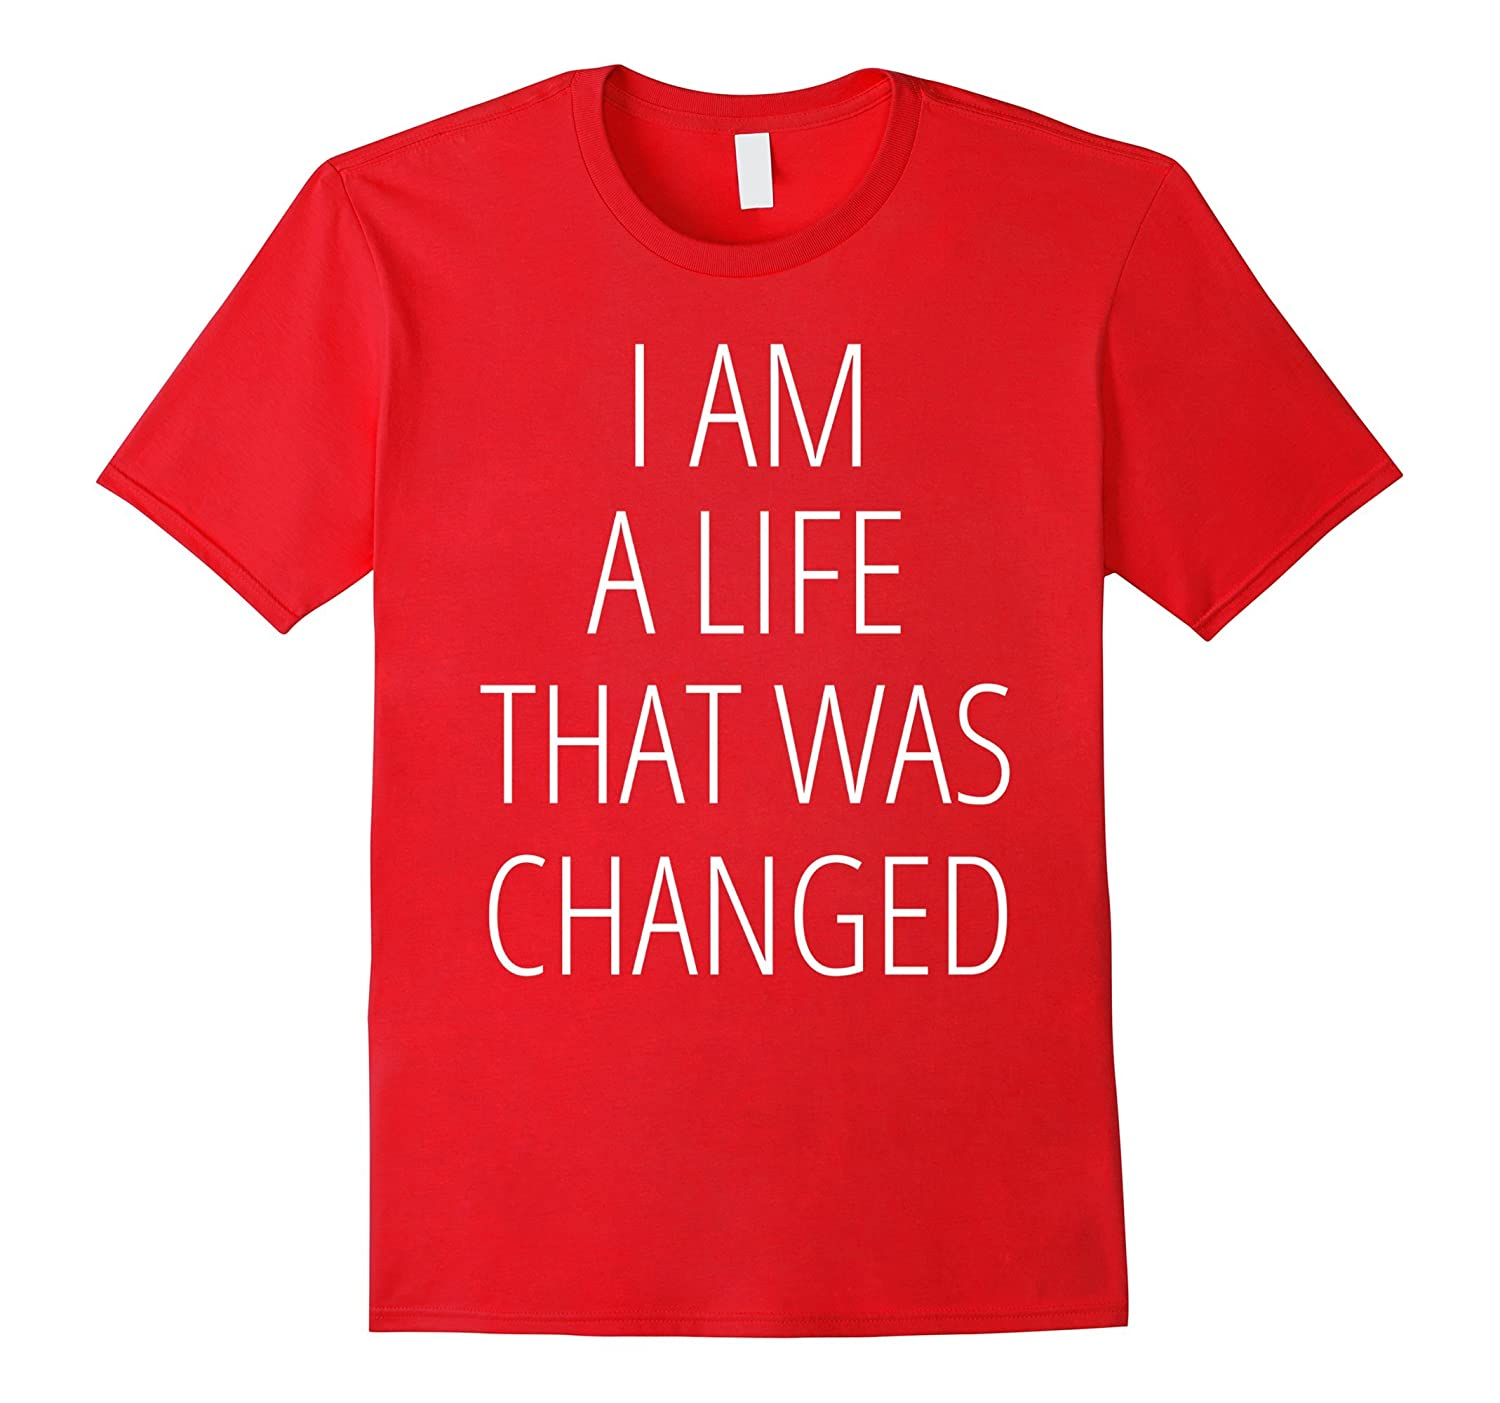 I AM A LIFE THAT WAS CHANGED CHRISTIAN BIBLE INSPIRE T-SHIRT-PL